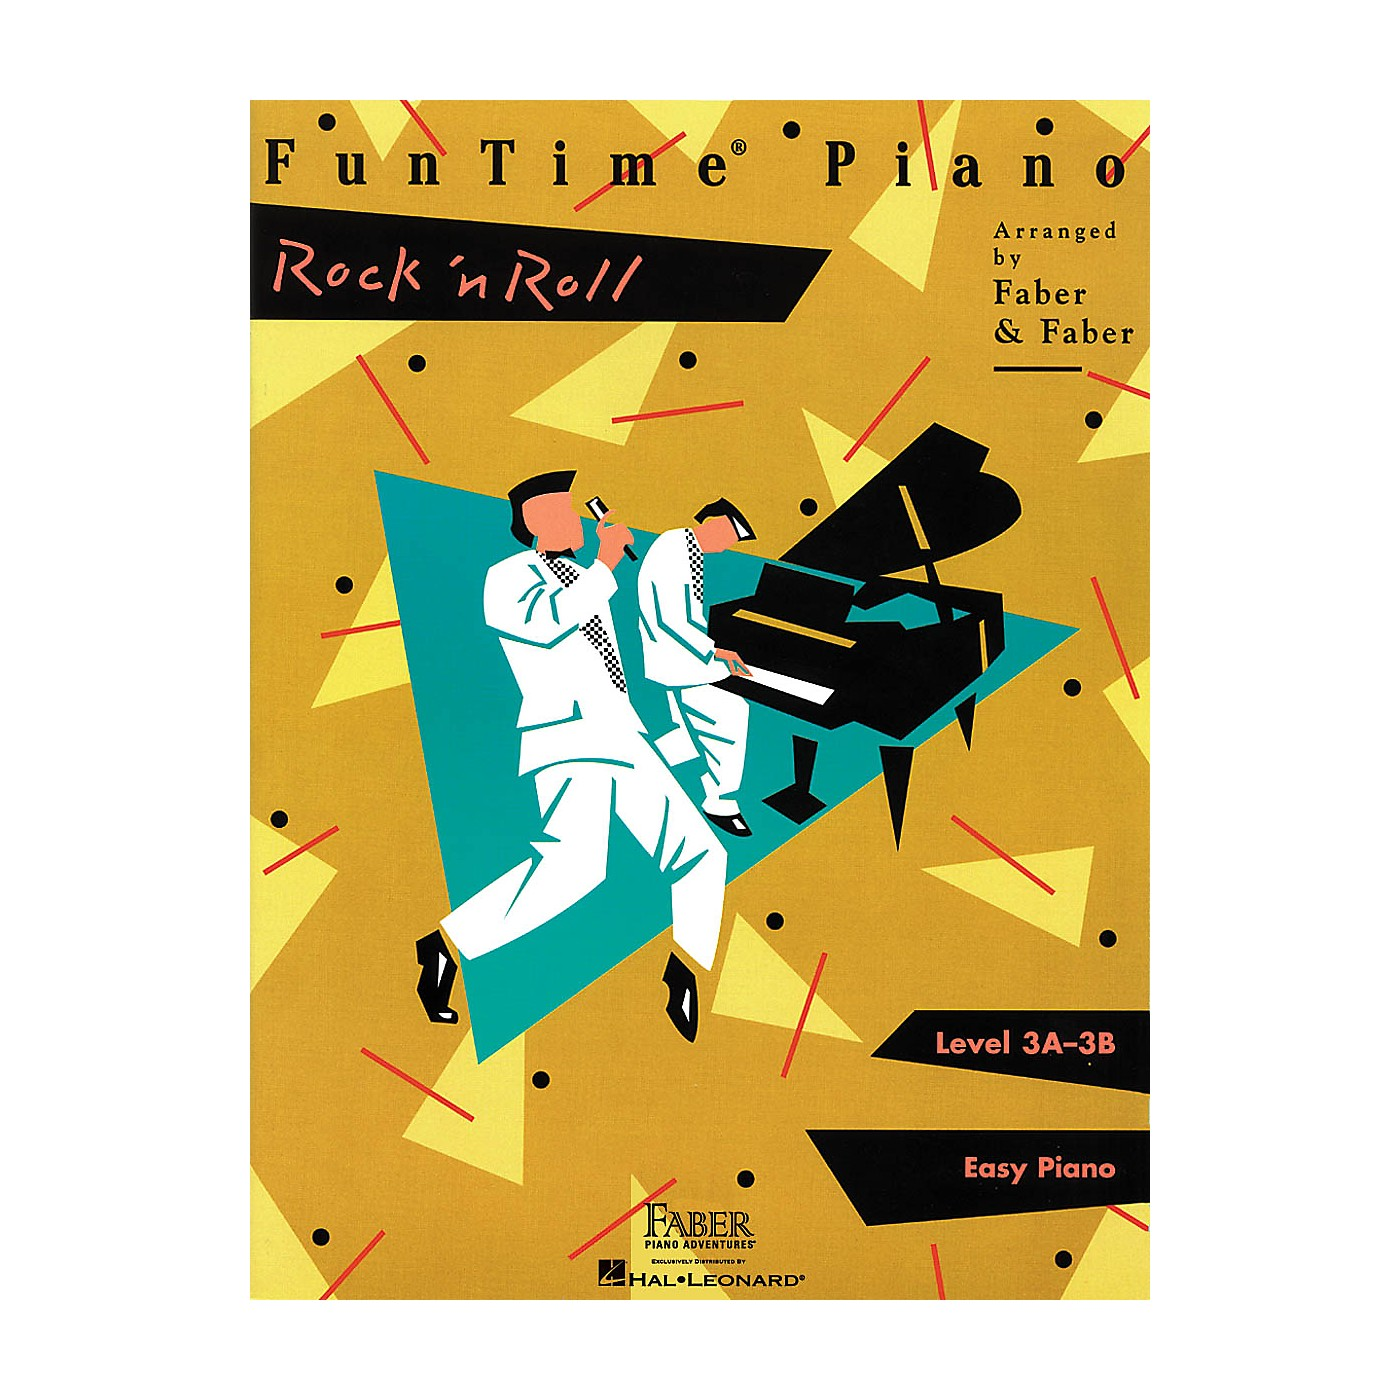 Faber Piano Adventures FunTime Piano Rock 'n' Roll Level 3A-3B thumbnail